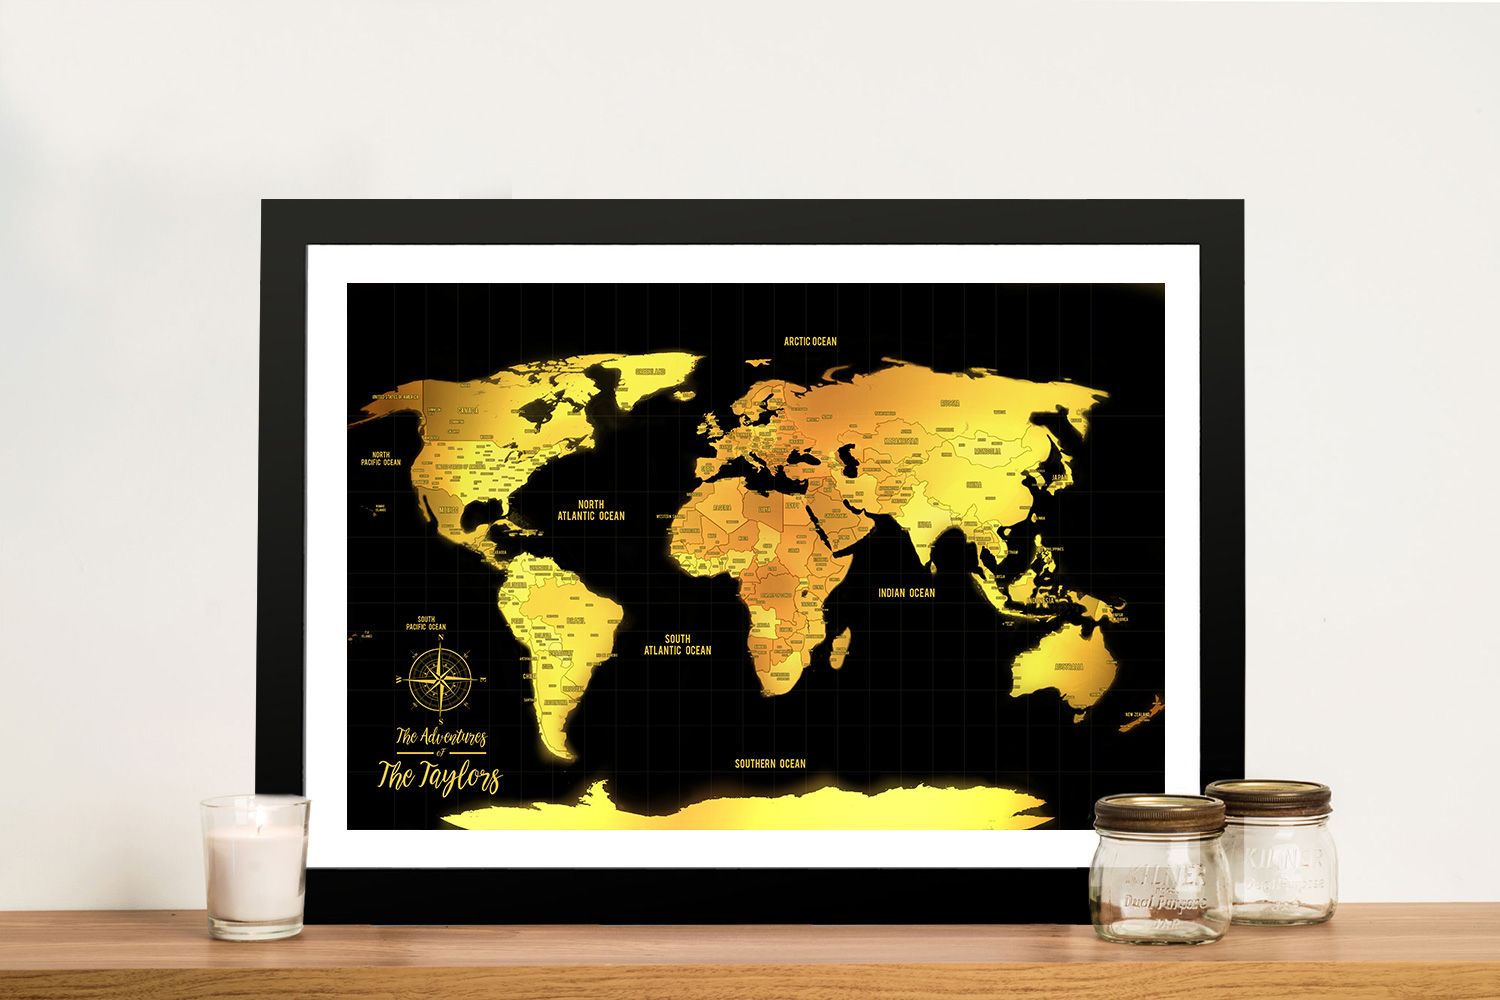 Customised Black & Gold Pushpin Travel Map Artwork | Black & Gold Push Pin Map